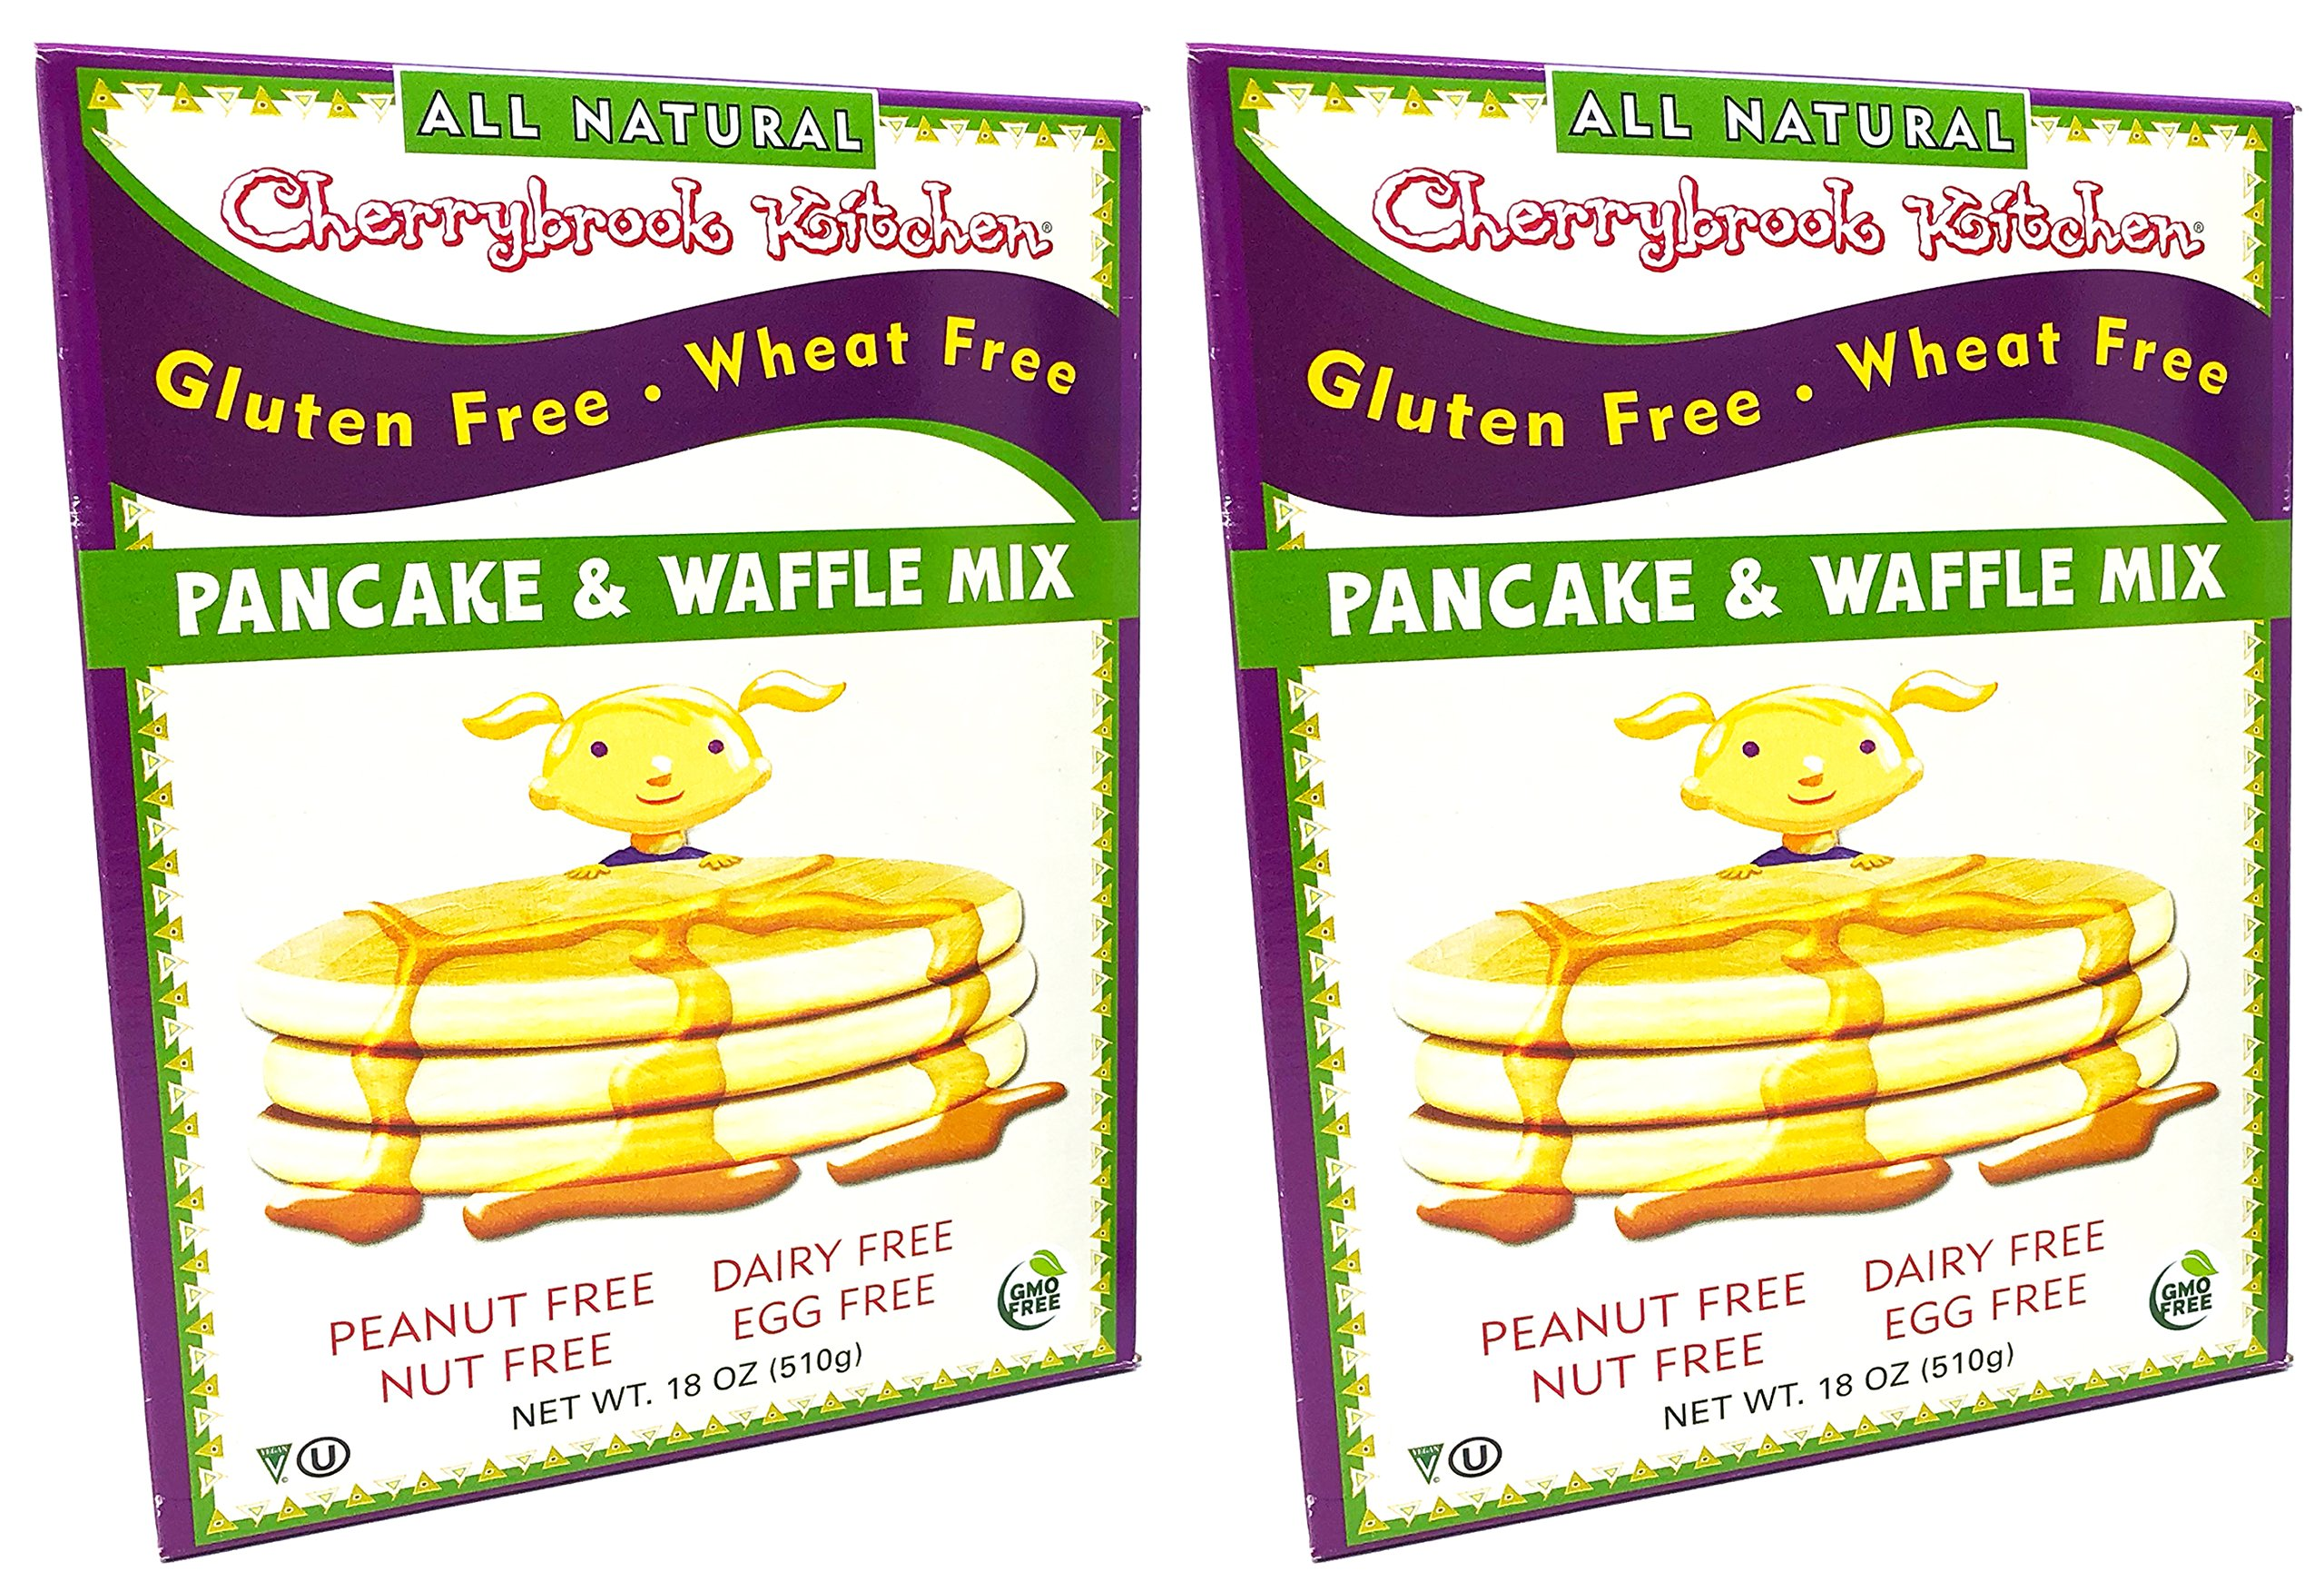 Cherrybrook Kitchen All Natural Gluten Free Wheat Free Pancake and Waffle Mix 18 Ounce (Pack of 2) by Cherrybrook Kitchen